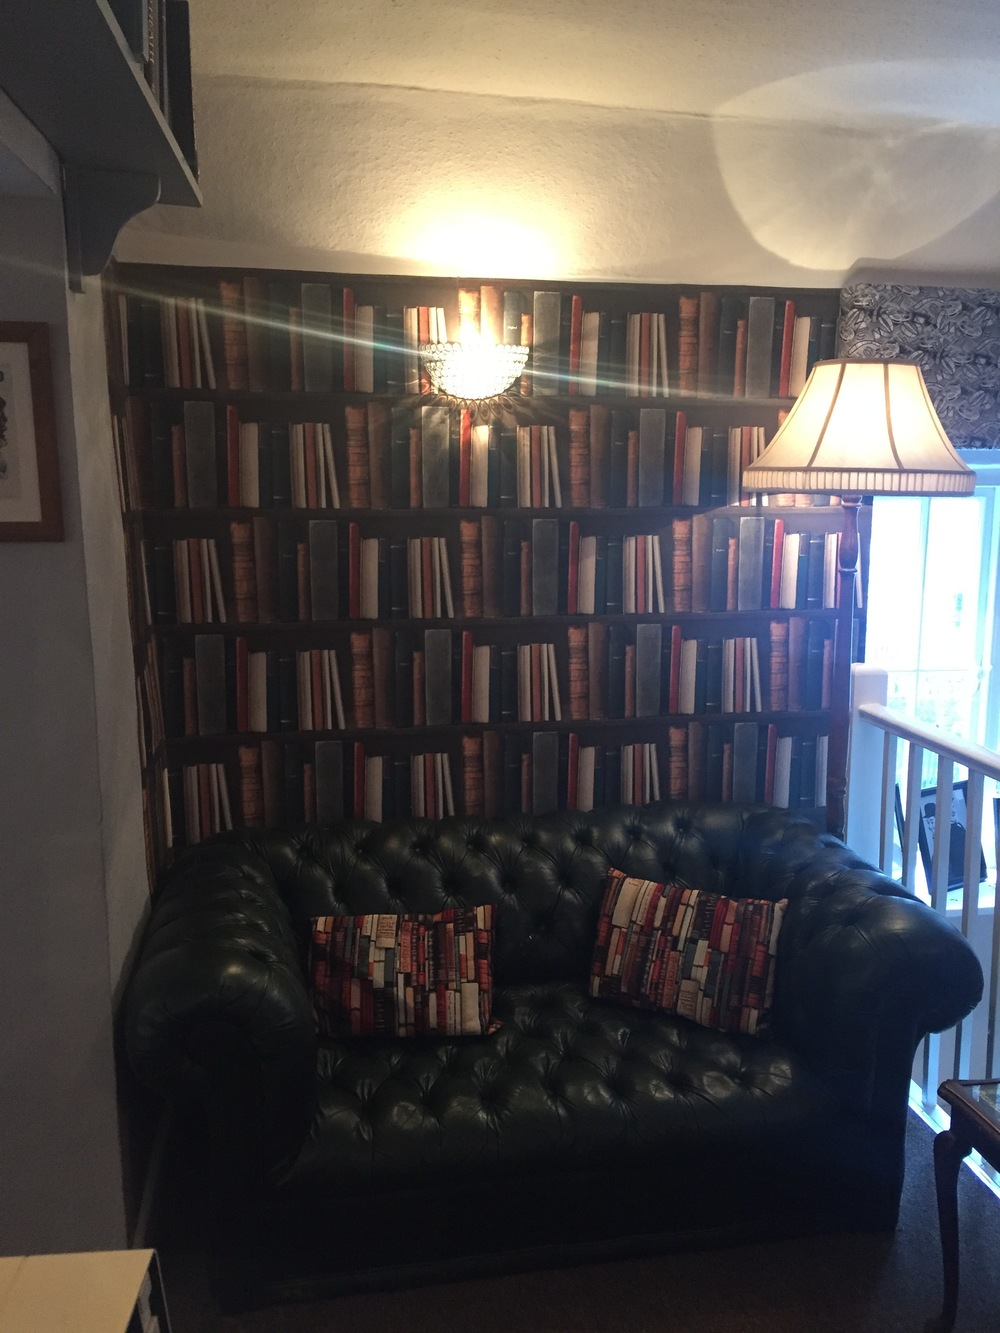 Cheddar Tea Rooms Decor: Library Wallpaper & Leather Chesterfield